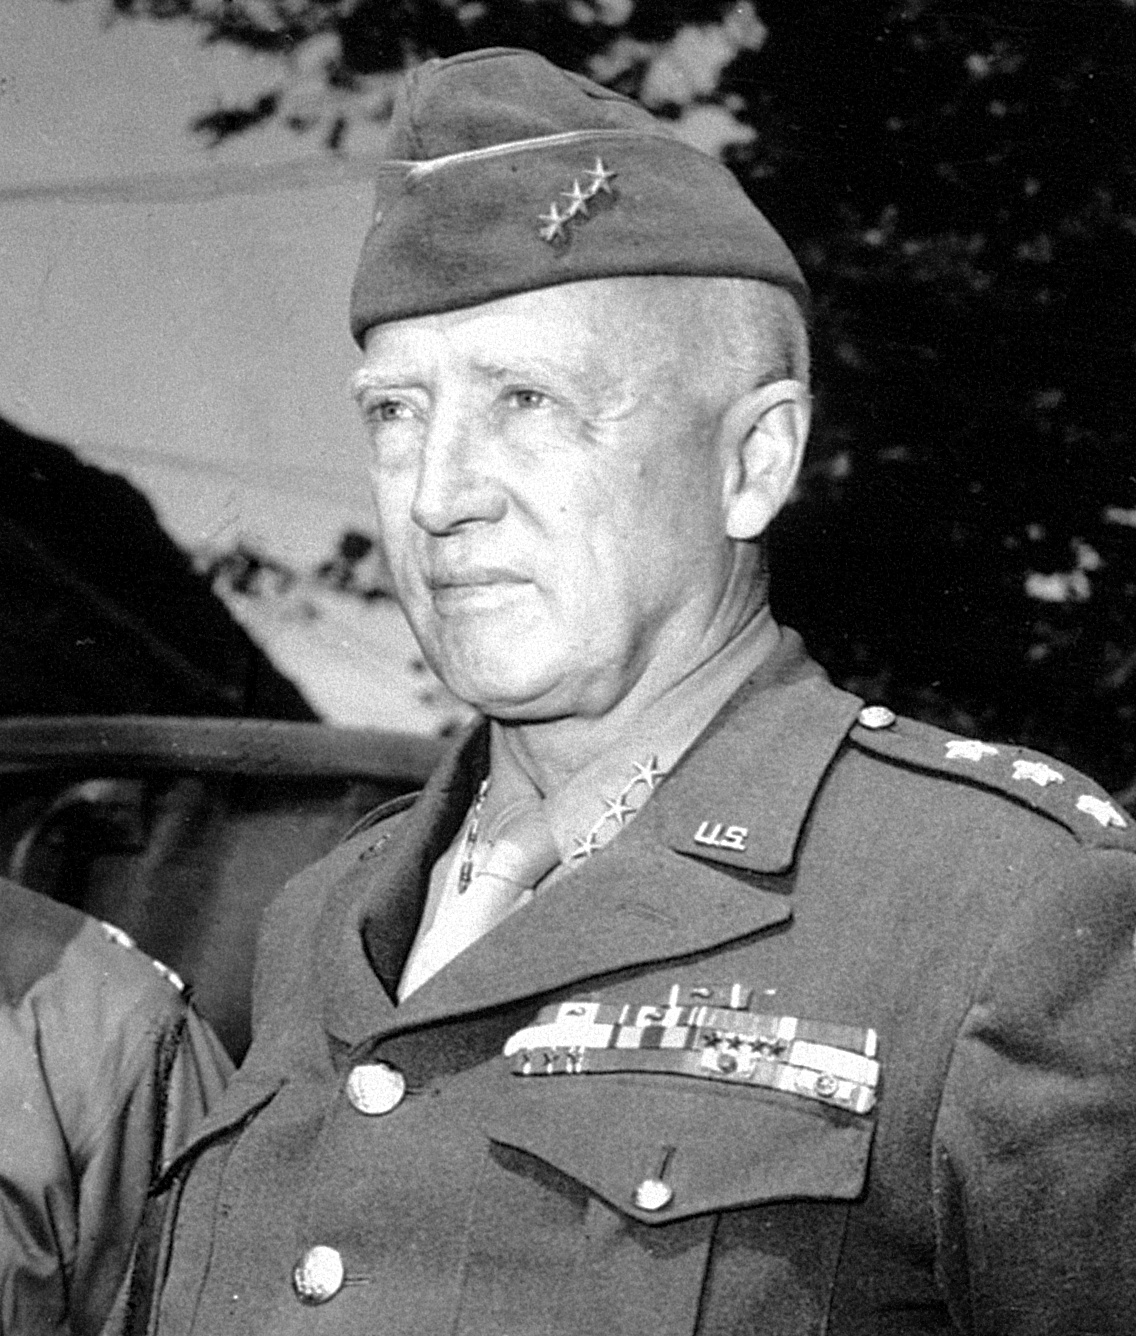 Portrait of George S. Patton